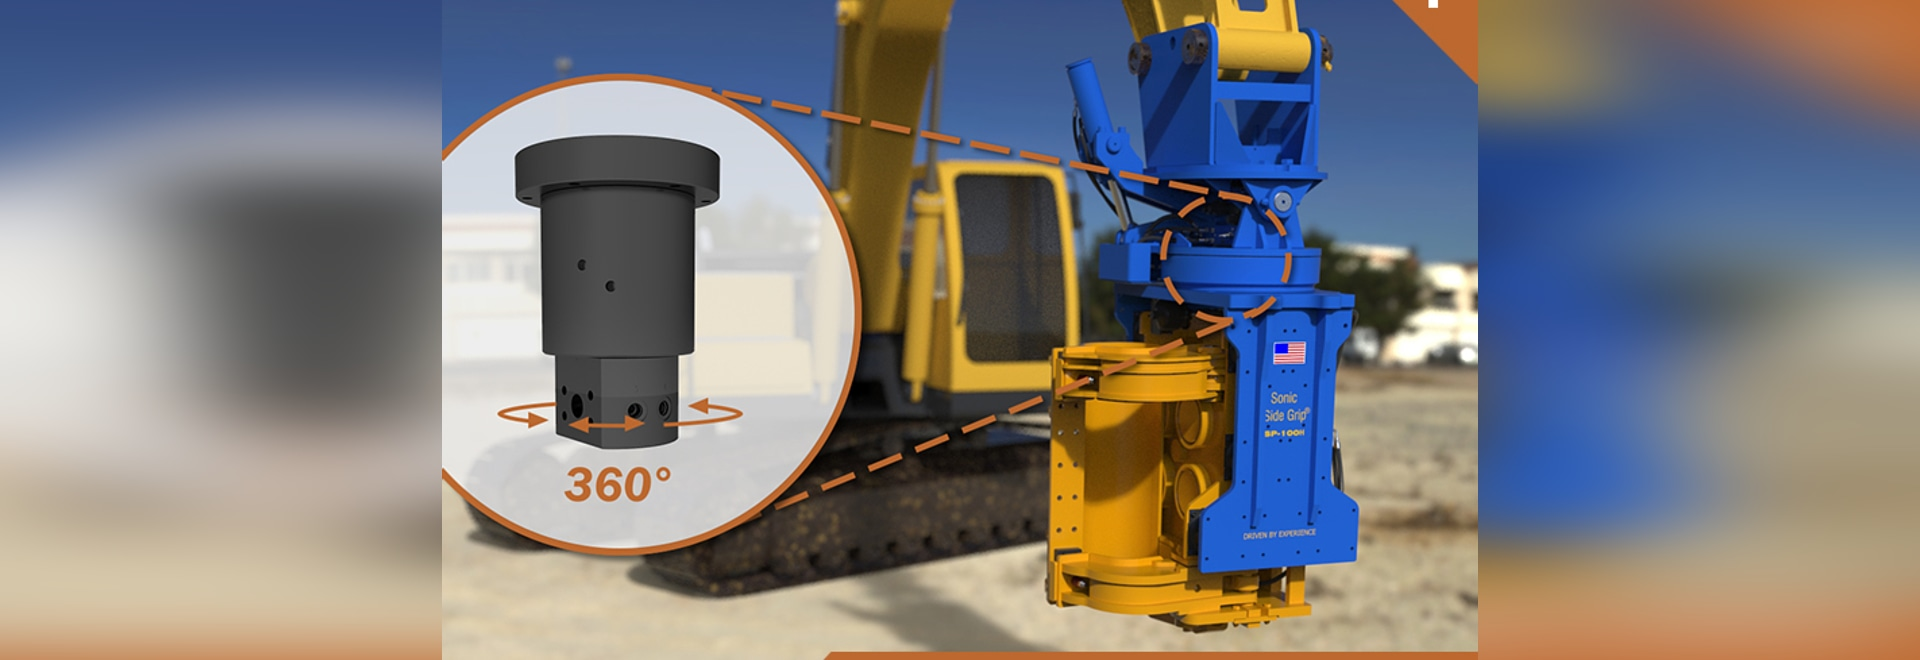 DSTI Hydraulic Swivel Joints for Heavy Equipment Attachments